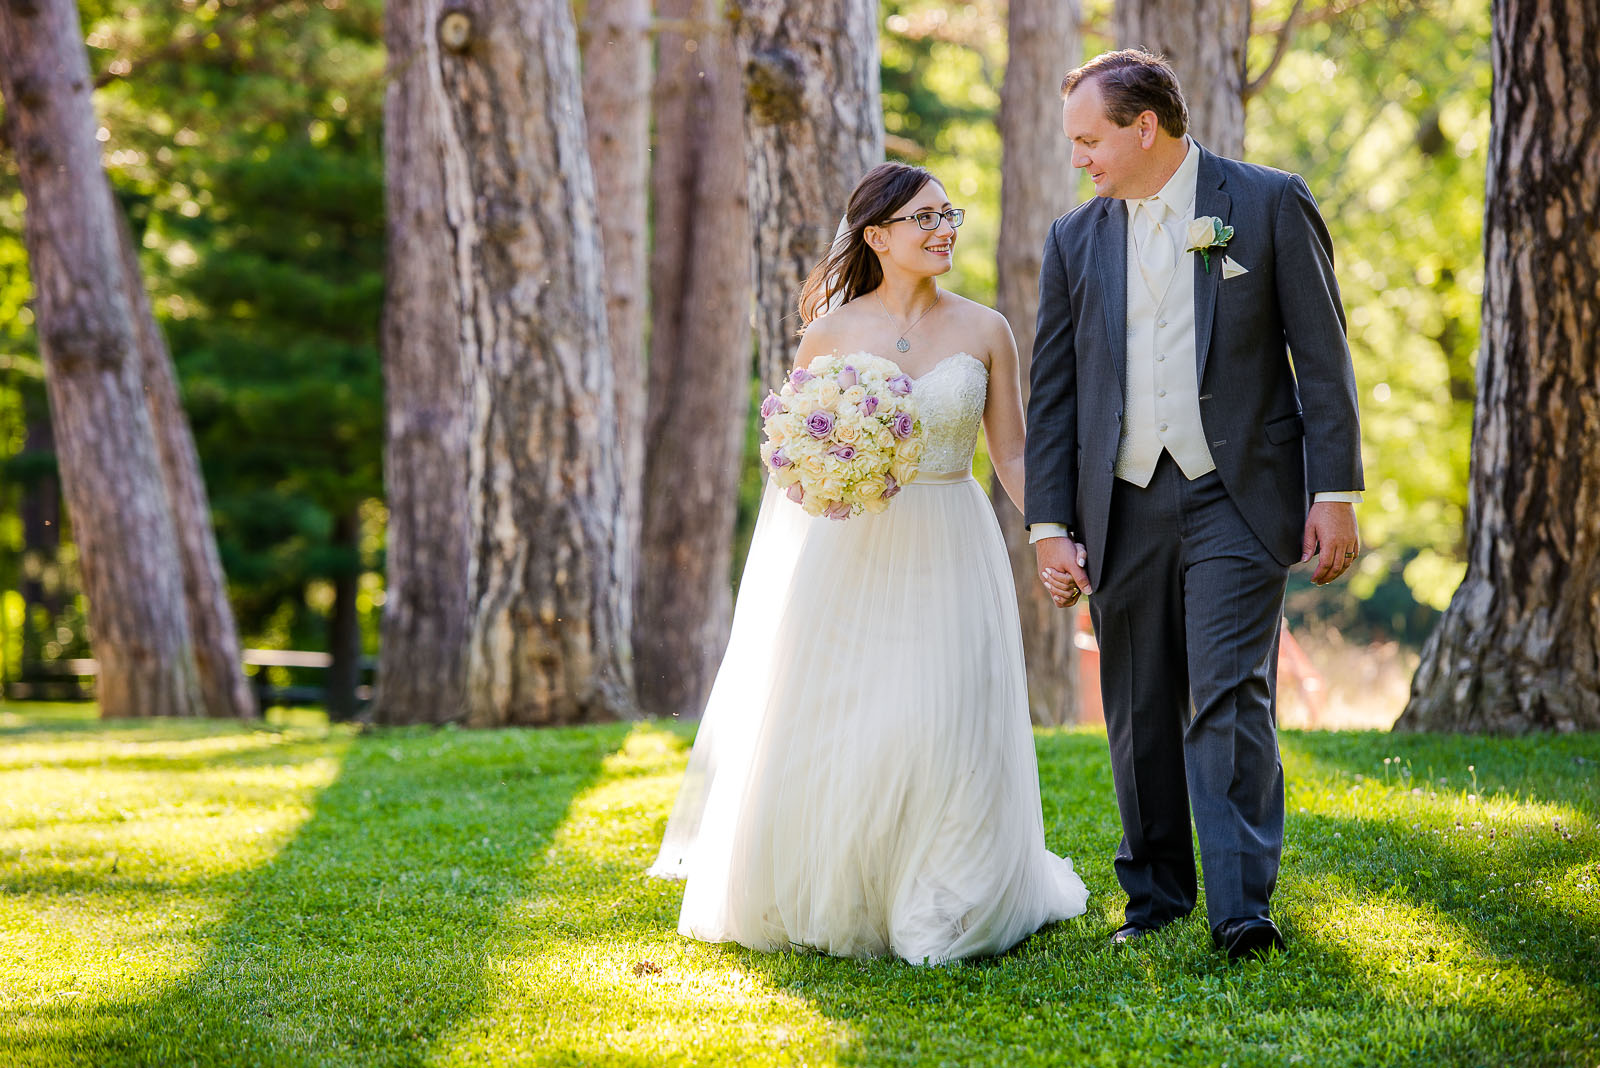 Eric_and_Christy_Photography_Blog_Julie_Adam_Wedding-45